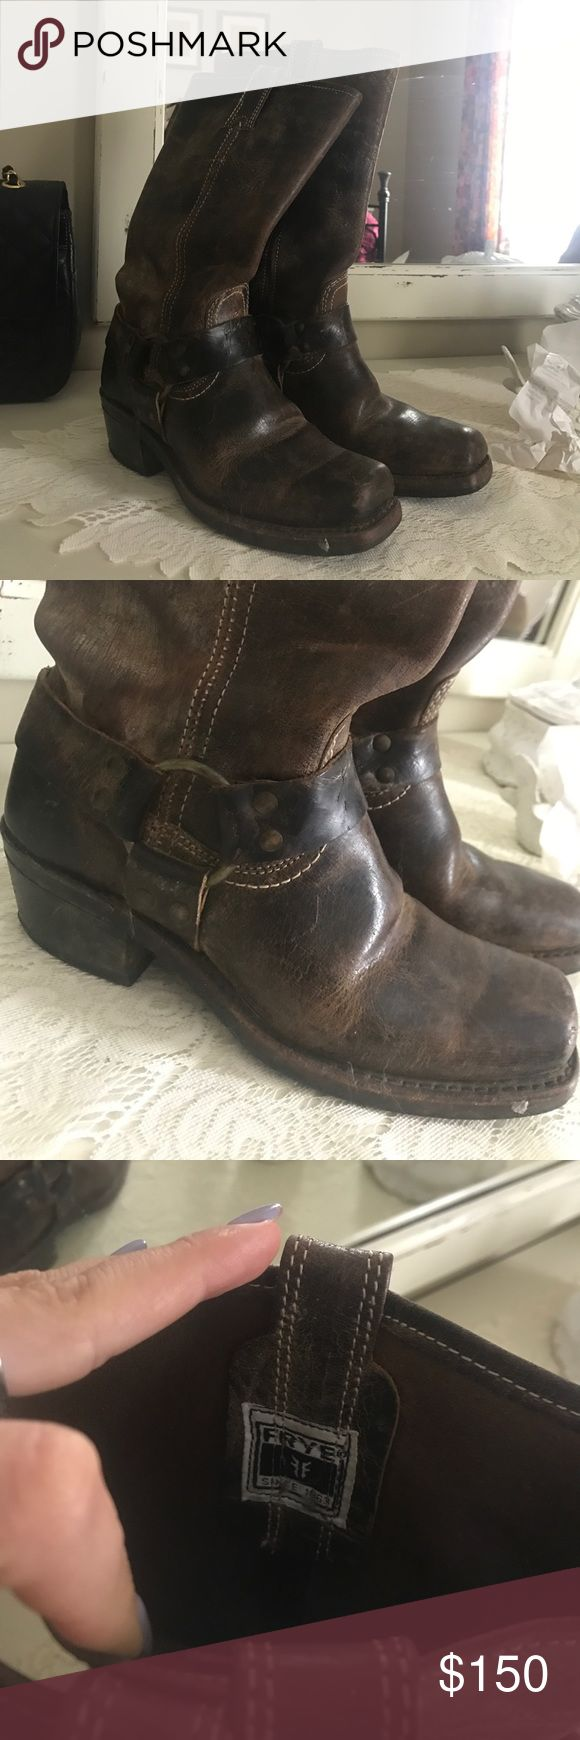 Leather Frye Boot Expresso In perfect condition with no damage, there's designed wear on these like any Frye boot but these have only been worn a few times. Just don't wear them enough to keep them Frye Shoes Combat & Moto Boots